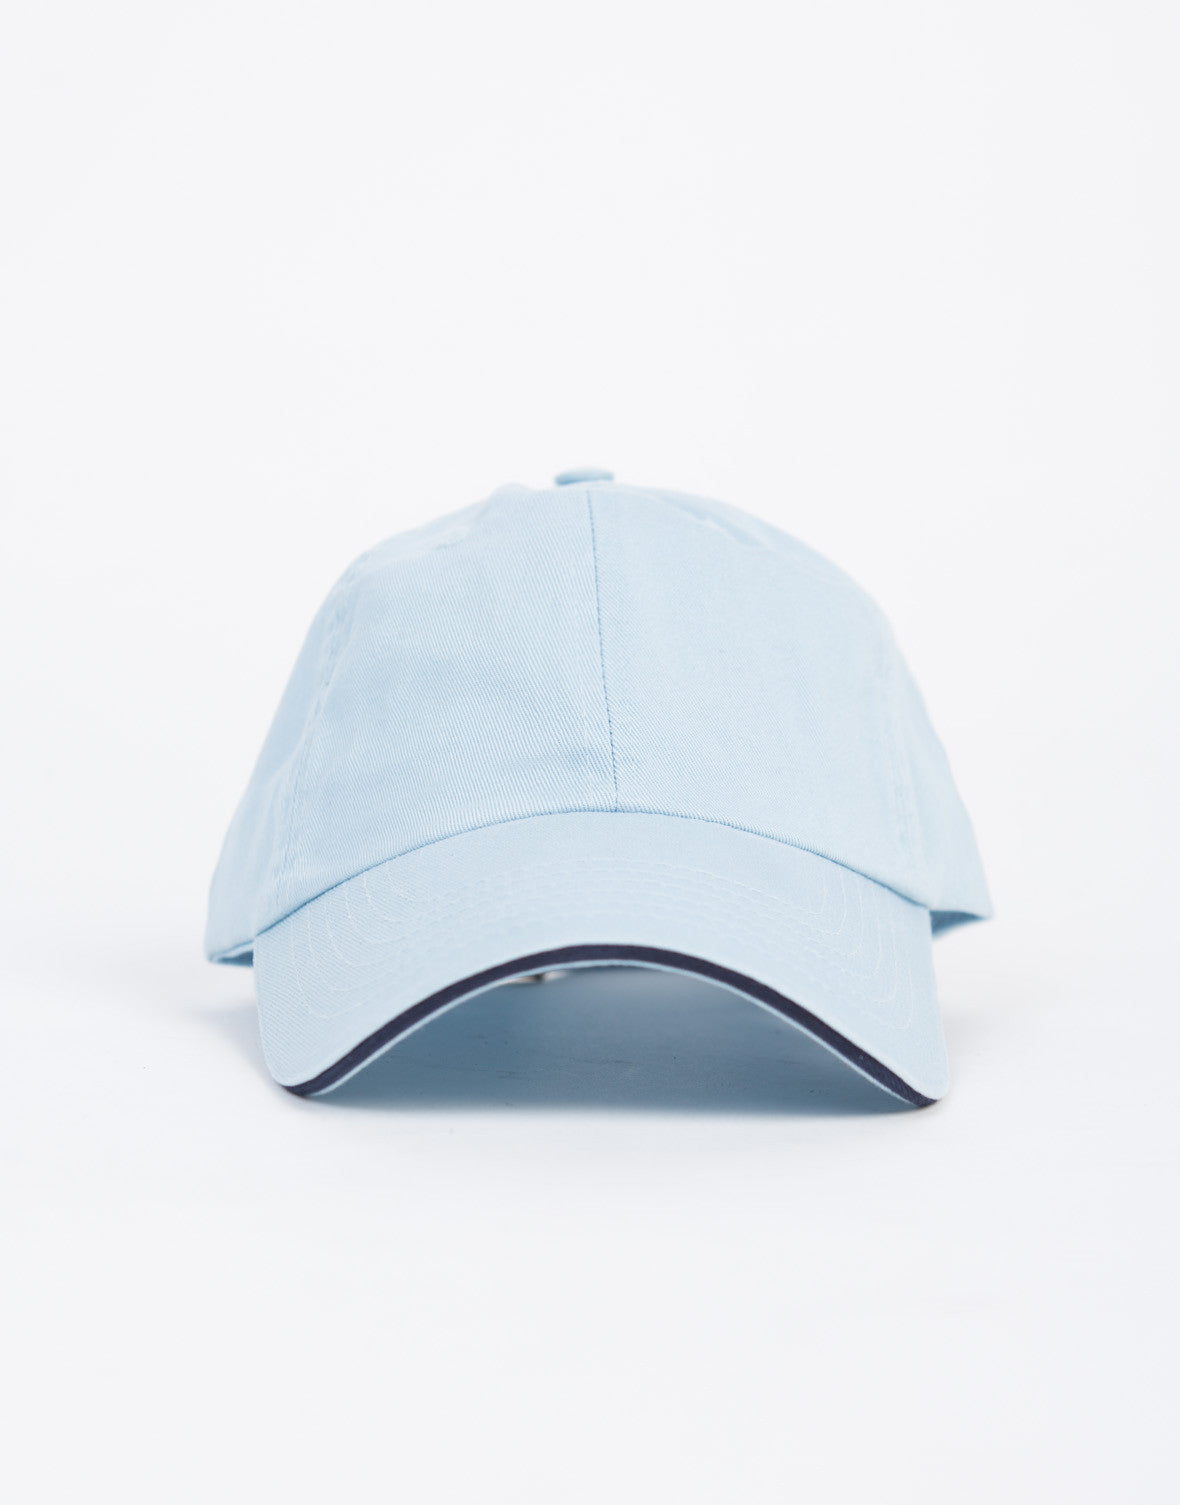 Striped Adjustable Baseball Cap